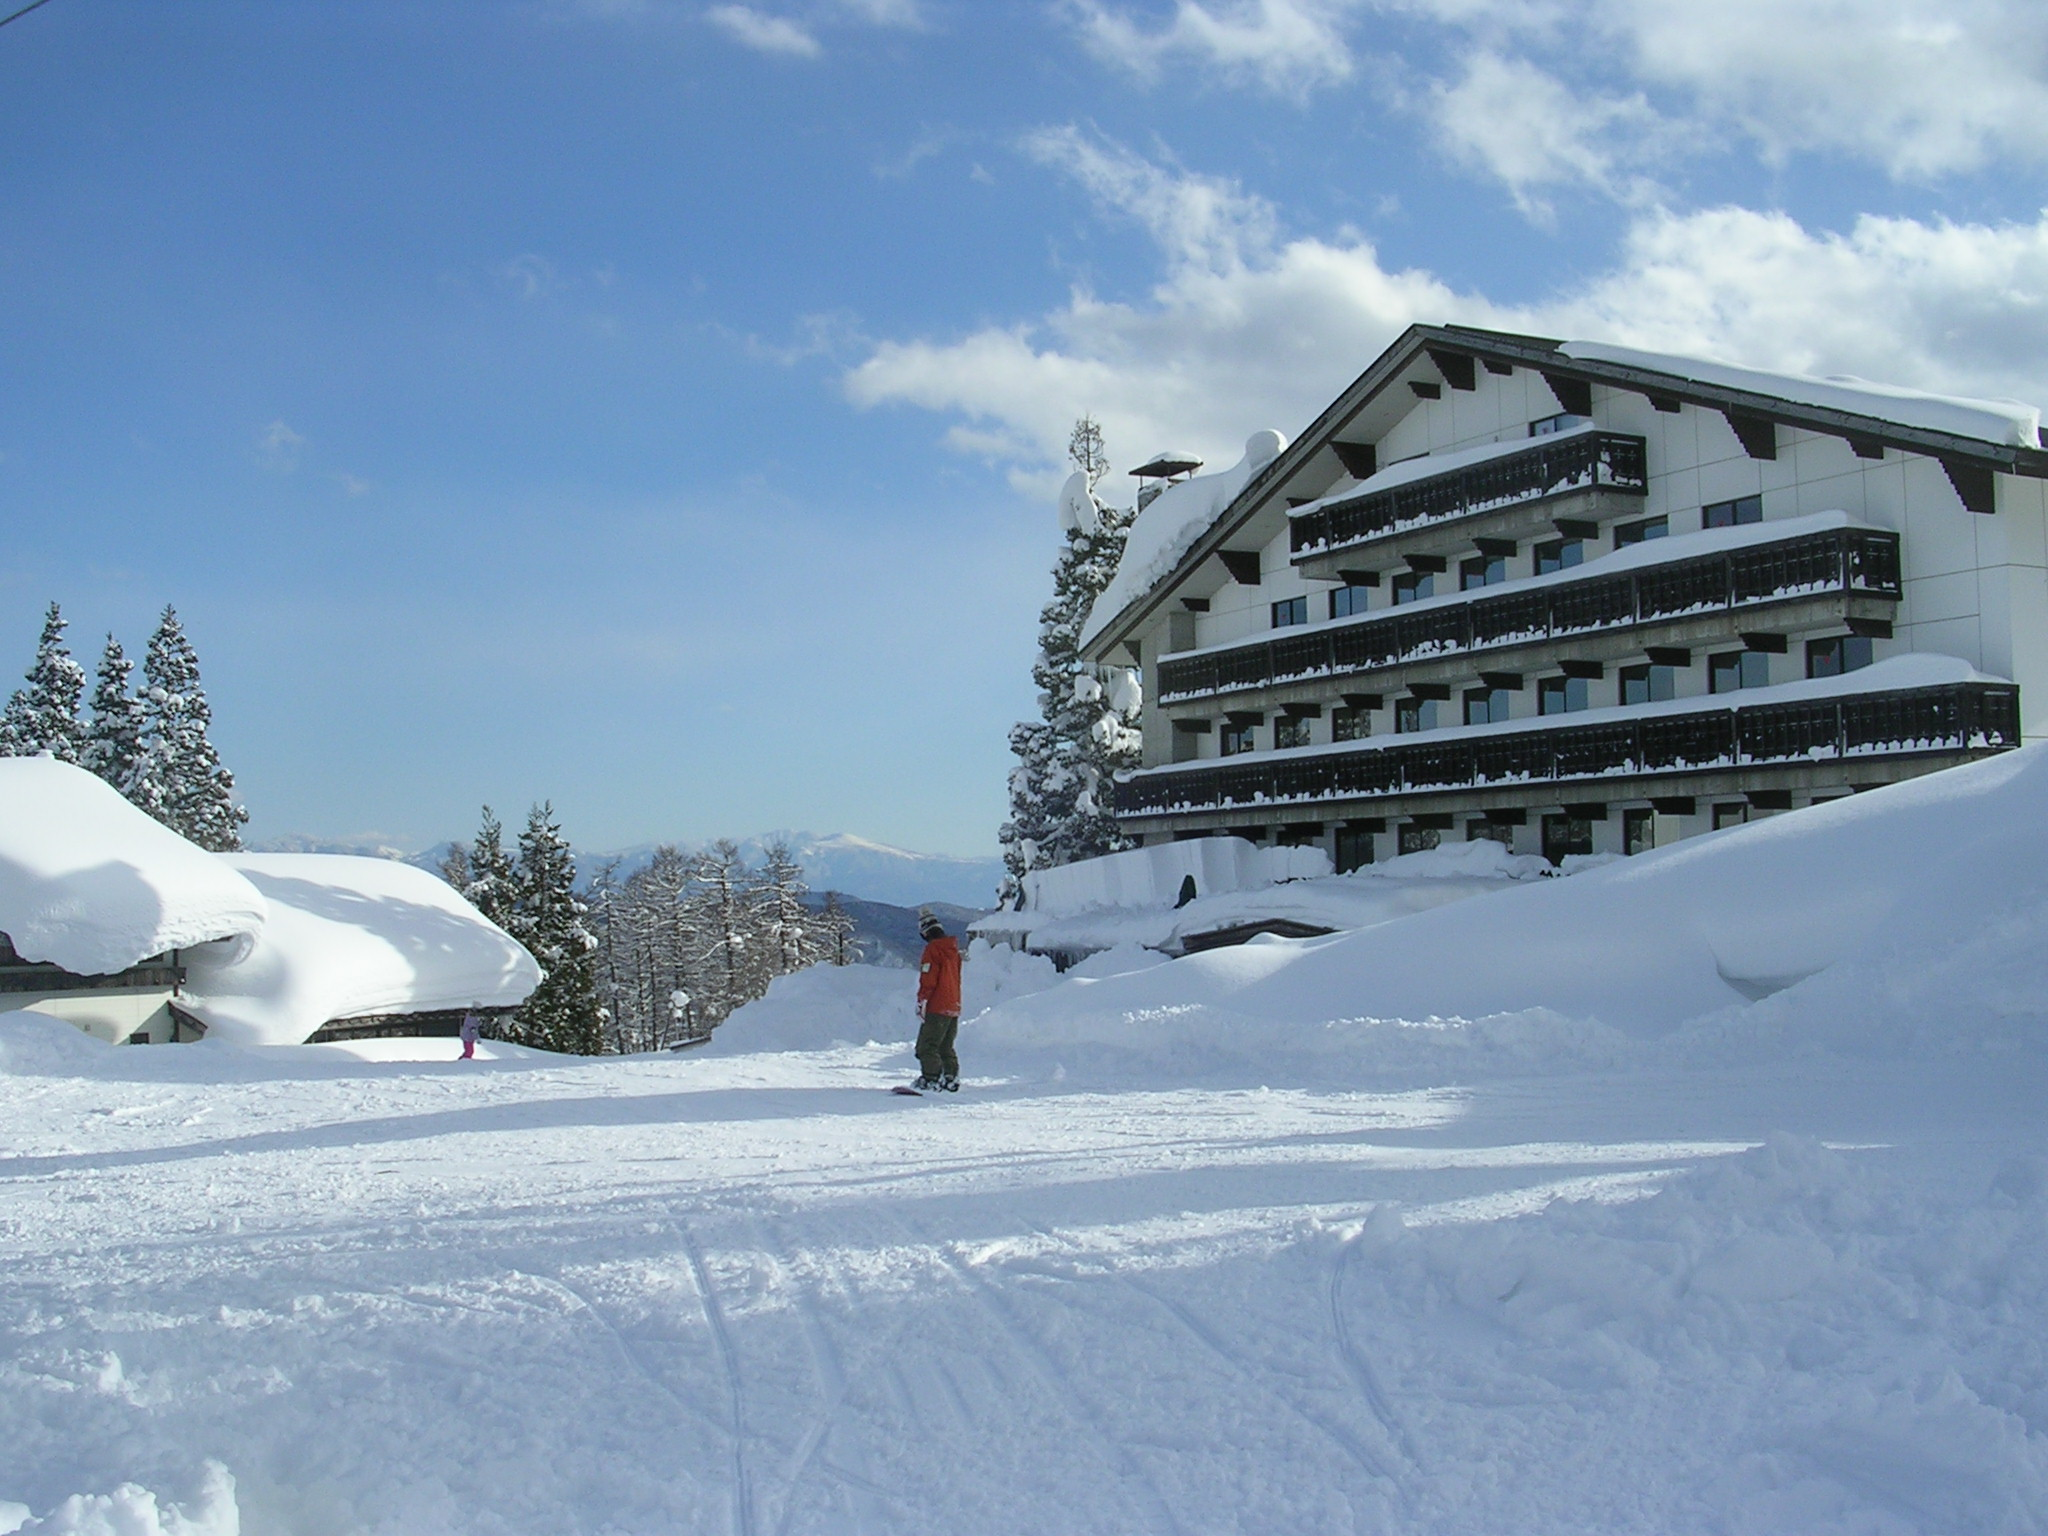 Resort Hotel Alp